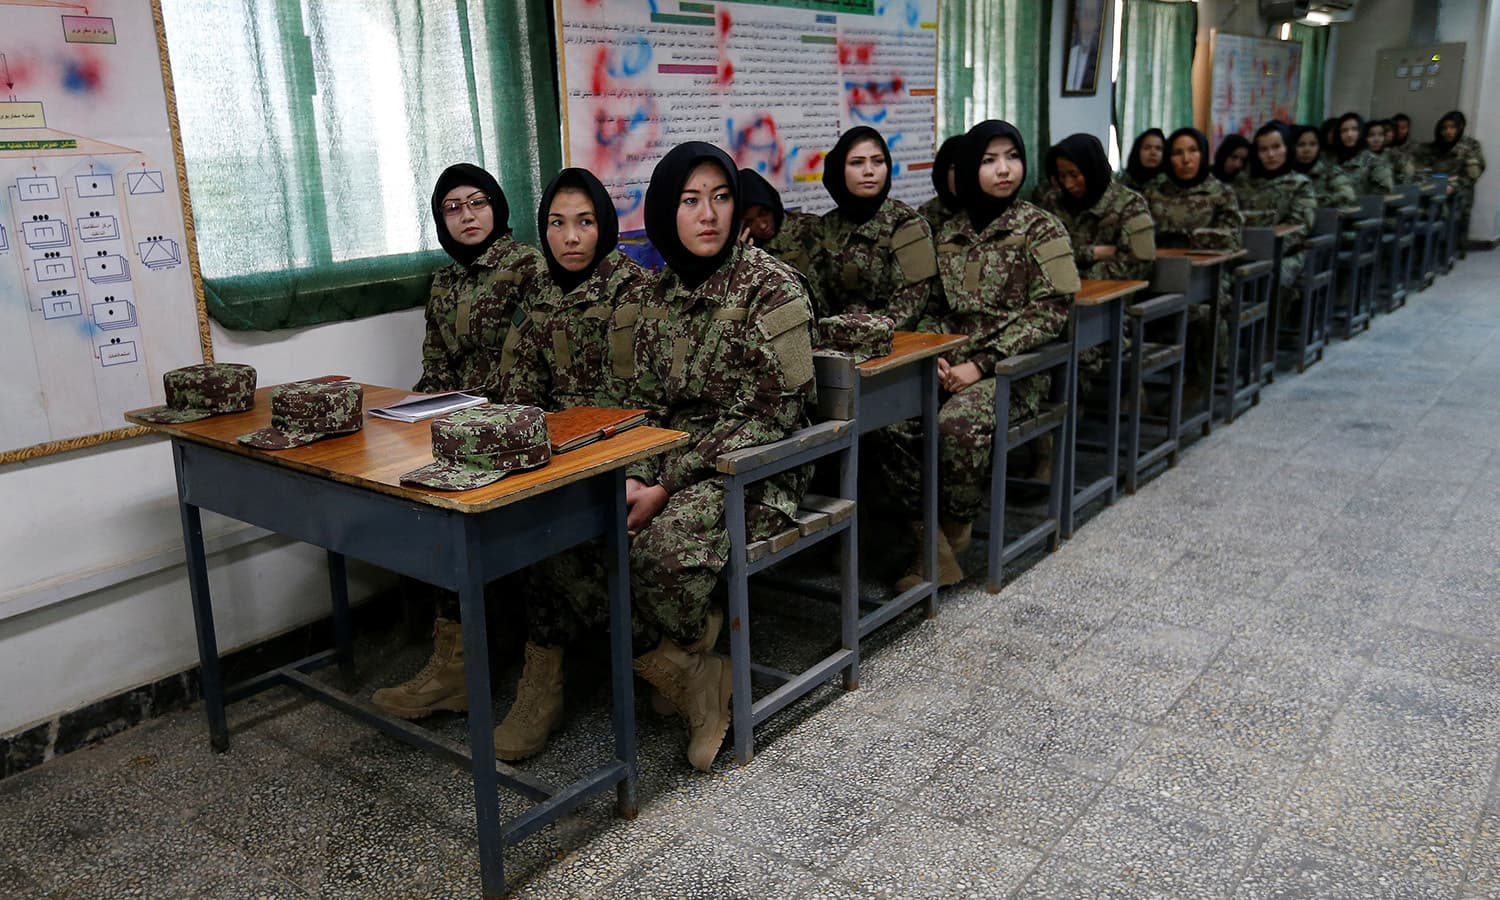 Female soldiers from the Afghan National Army (ANA) attend a lesson in a classroom at the Kabul Military Training Centre (KMTC). ─Reuters